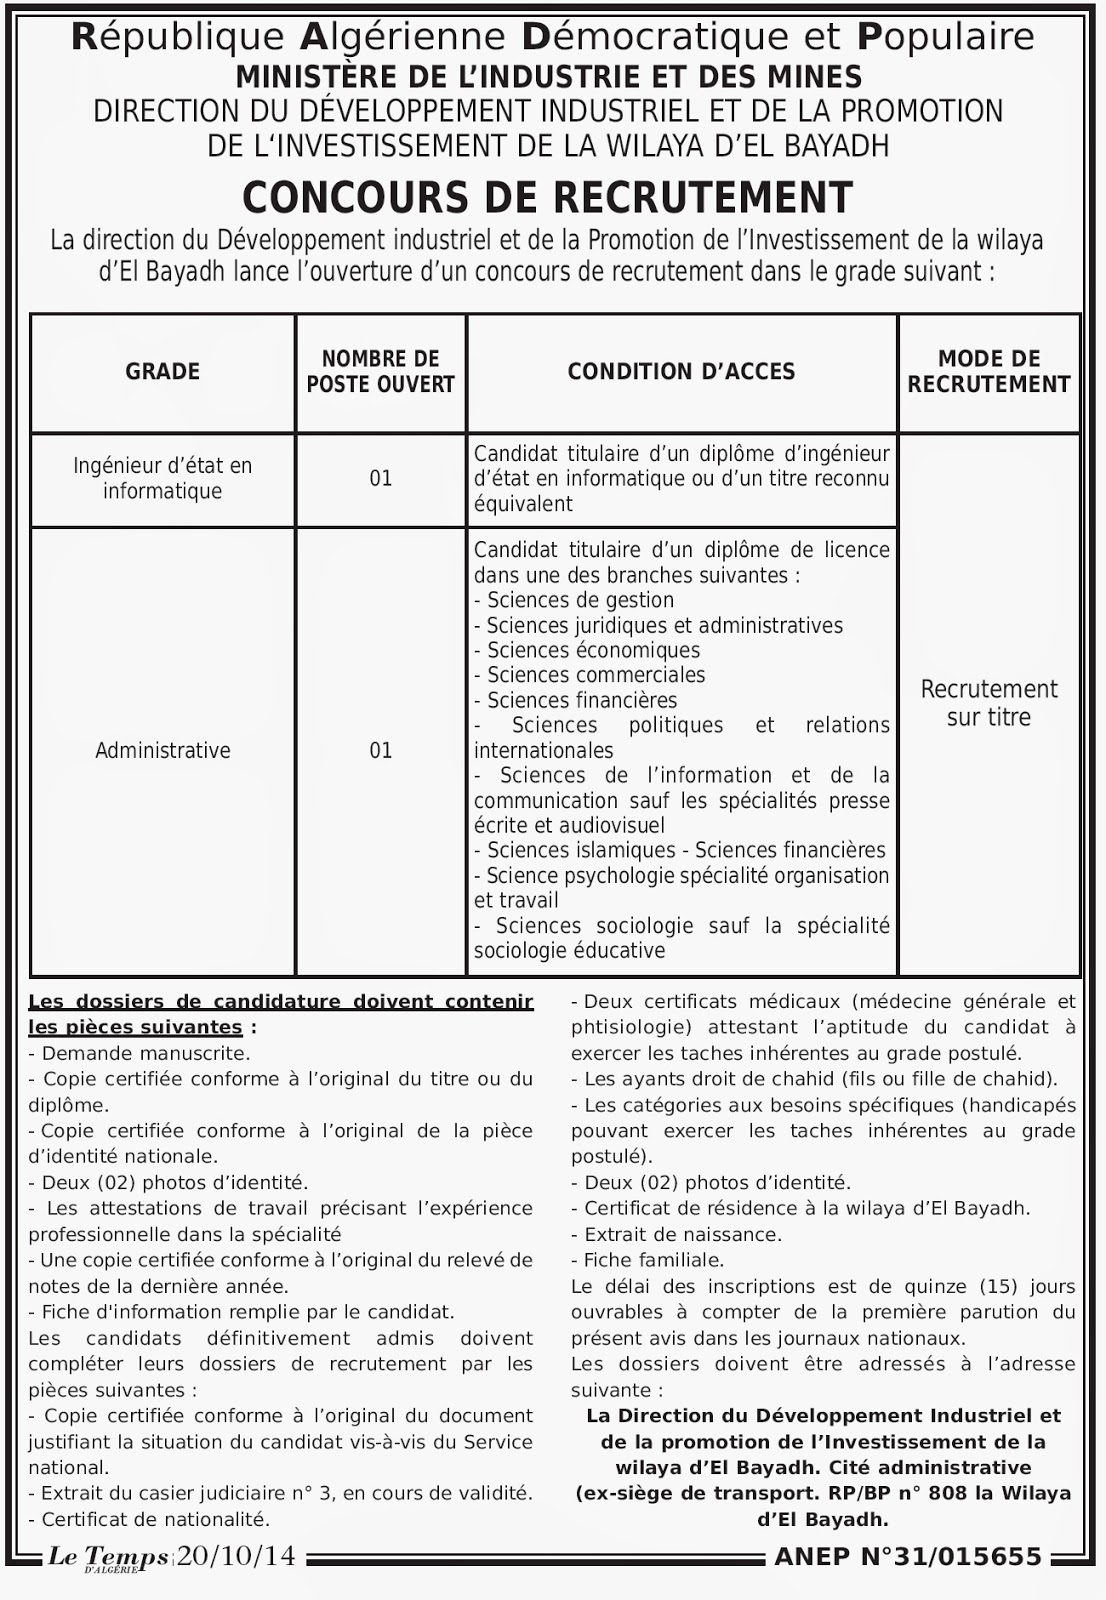 Soci�t� recrutement : etablissement Public hospitalier de Sebdou direction%2Bdu%2Bdev